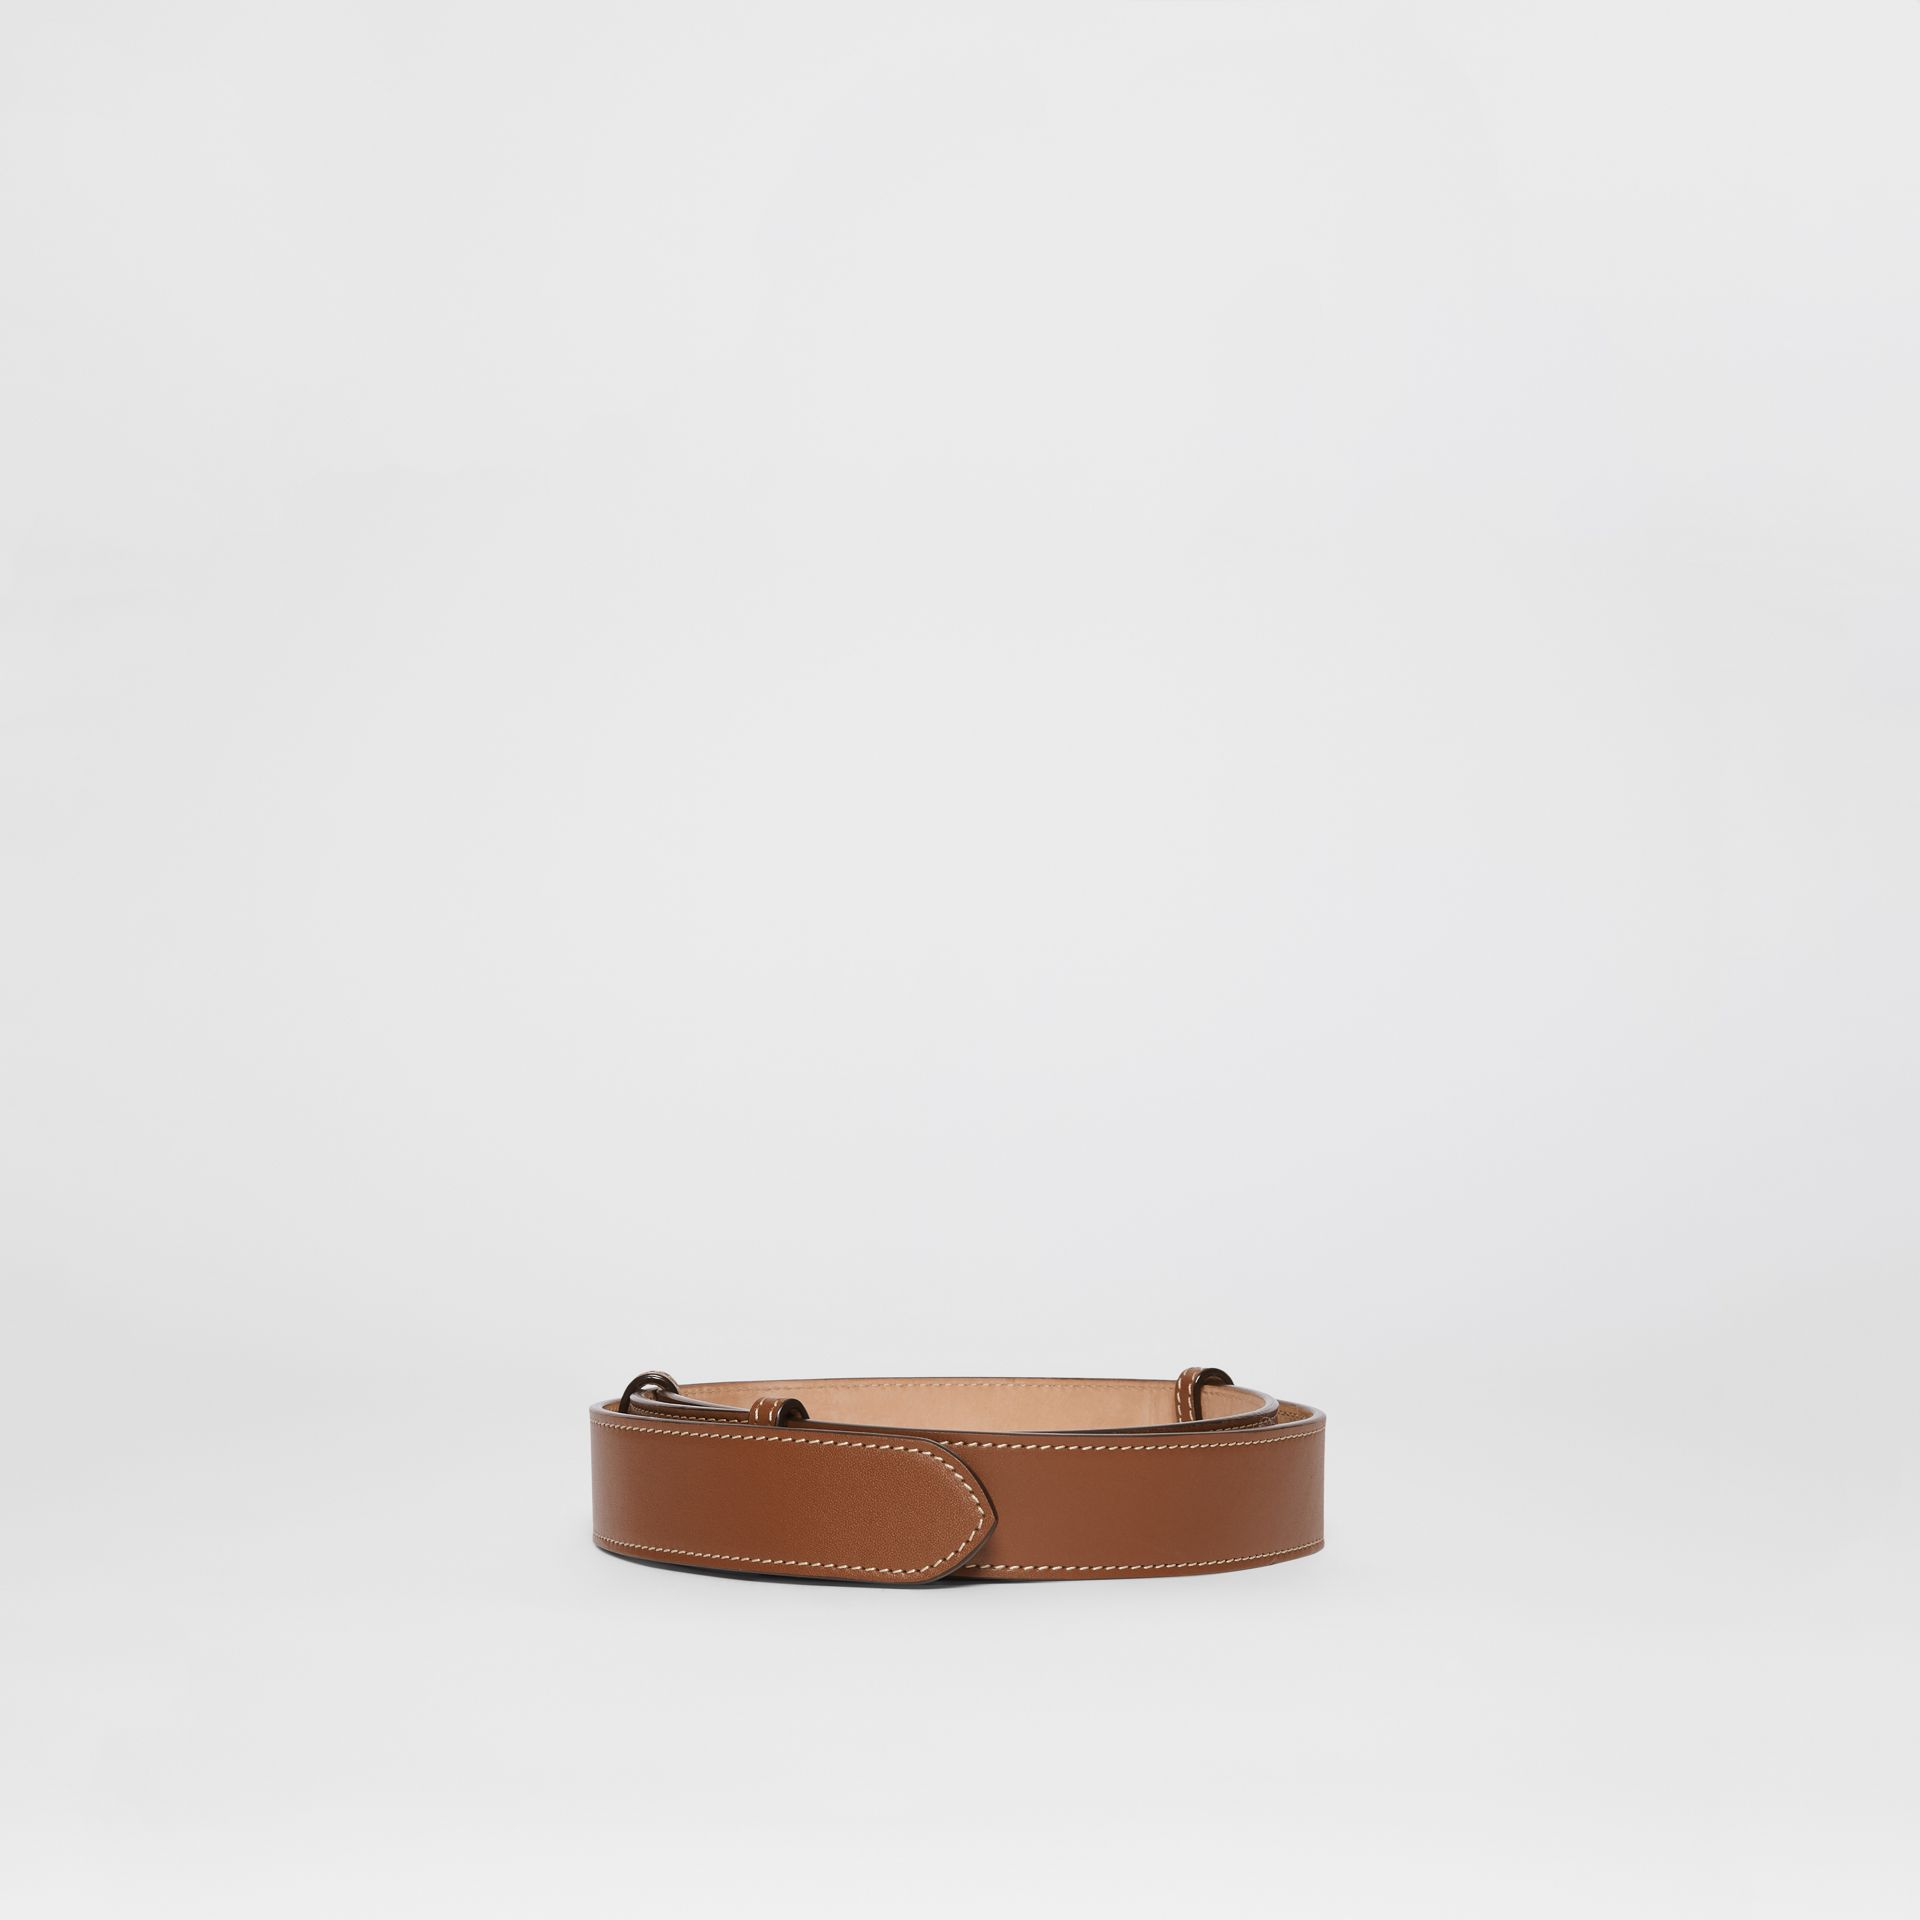 Triple Stud Leather Belt in Tan - Women | Burberry - gallery image 4